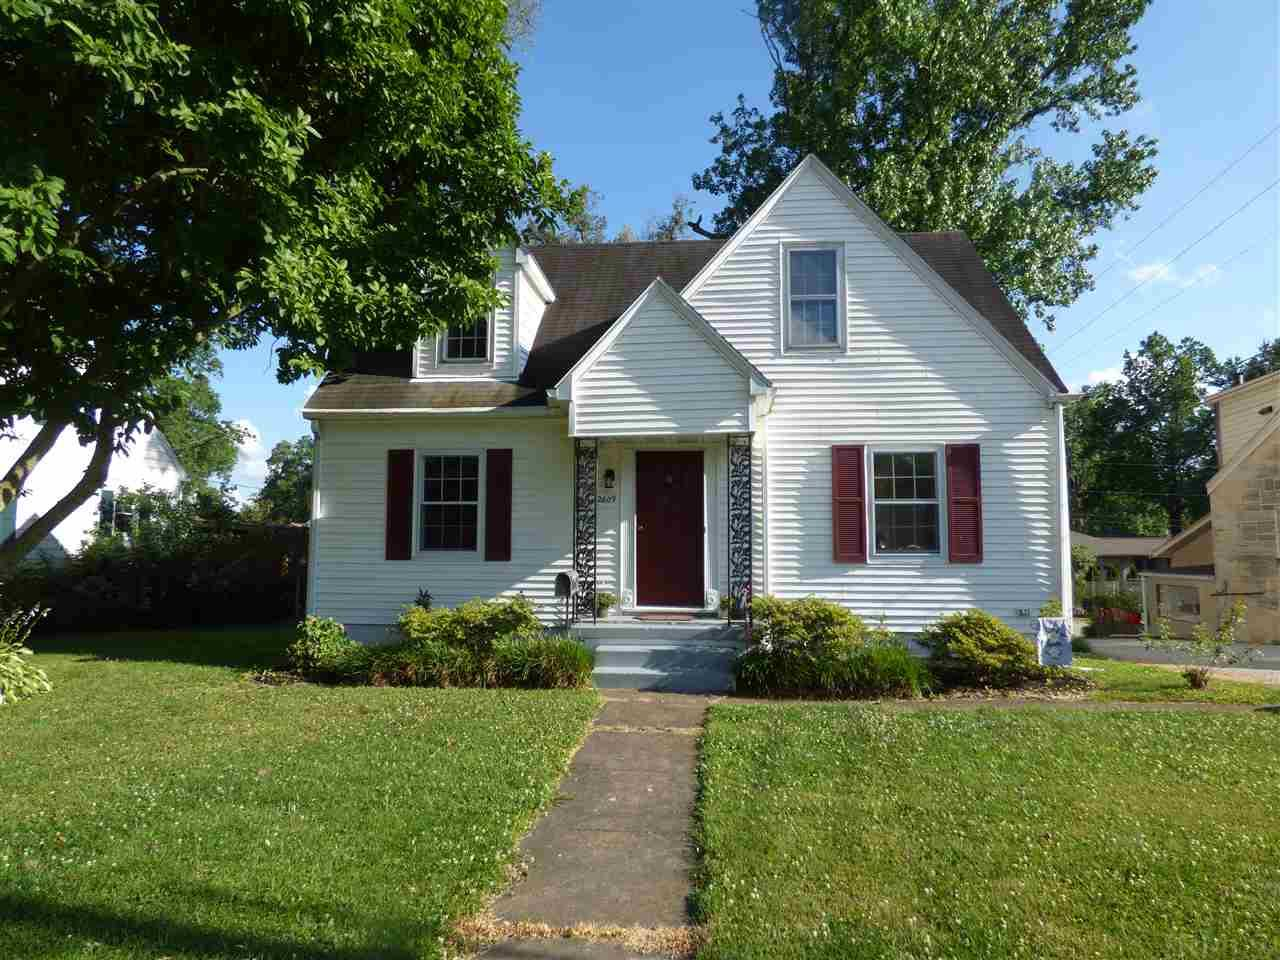 2609 E Walnut, Evansville, IN 47714